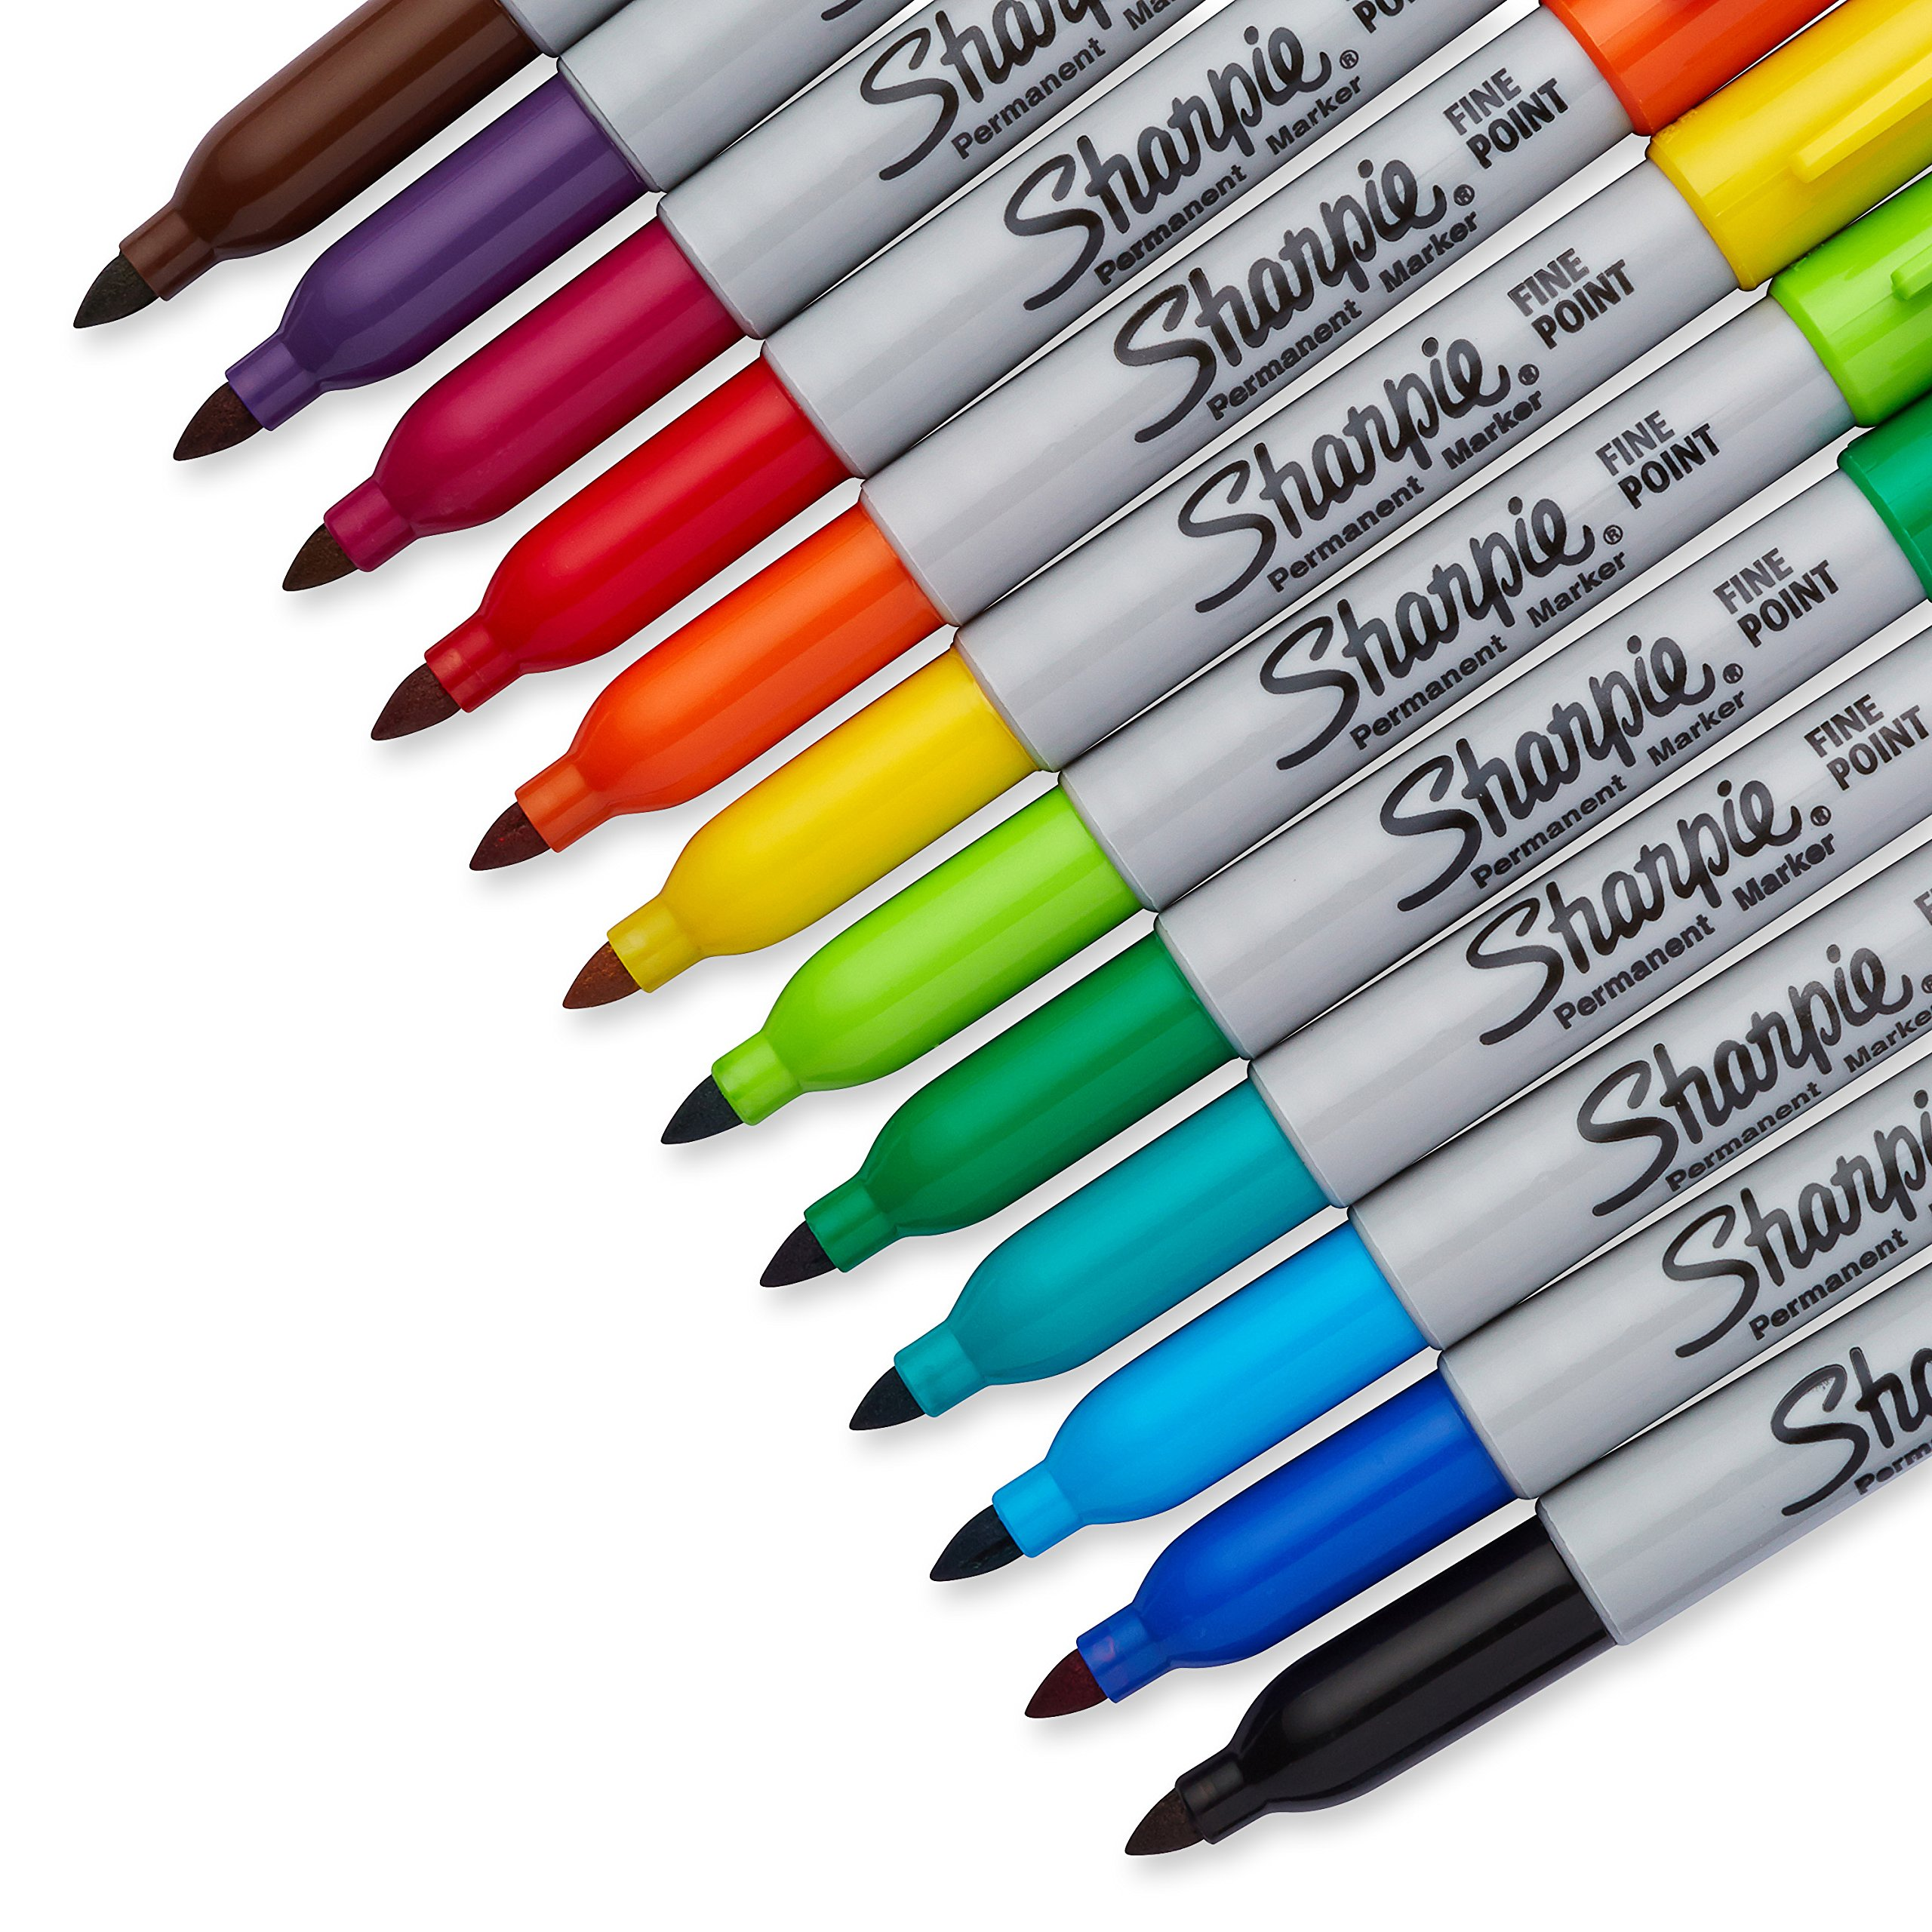 Sharpie Color Burst Permanent Markers, Fine Point, Assorted Colors, 24 Count by Sharpie (Image #7)